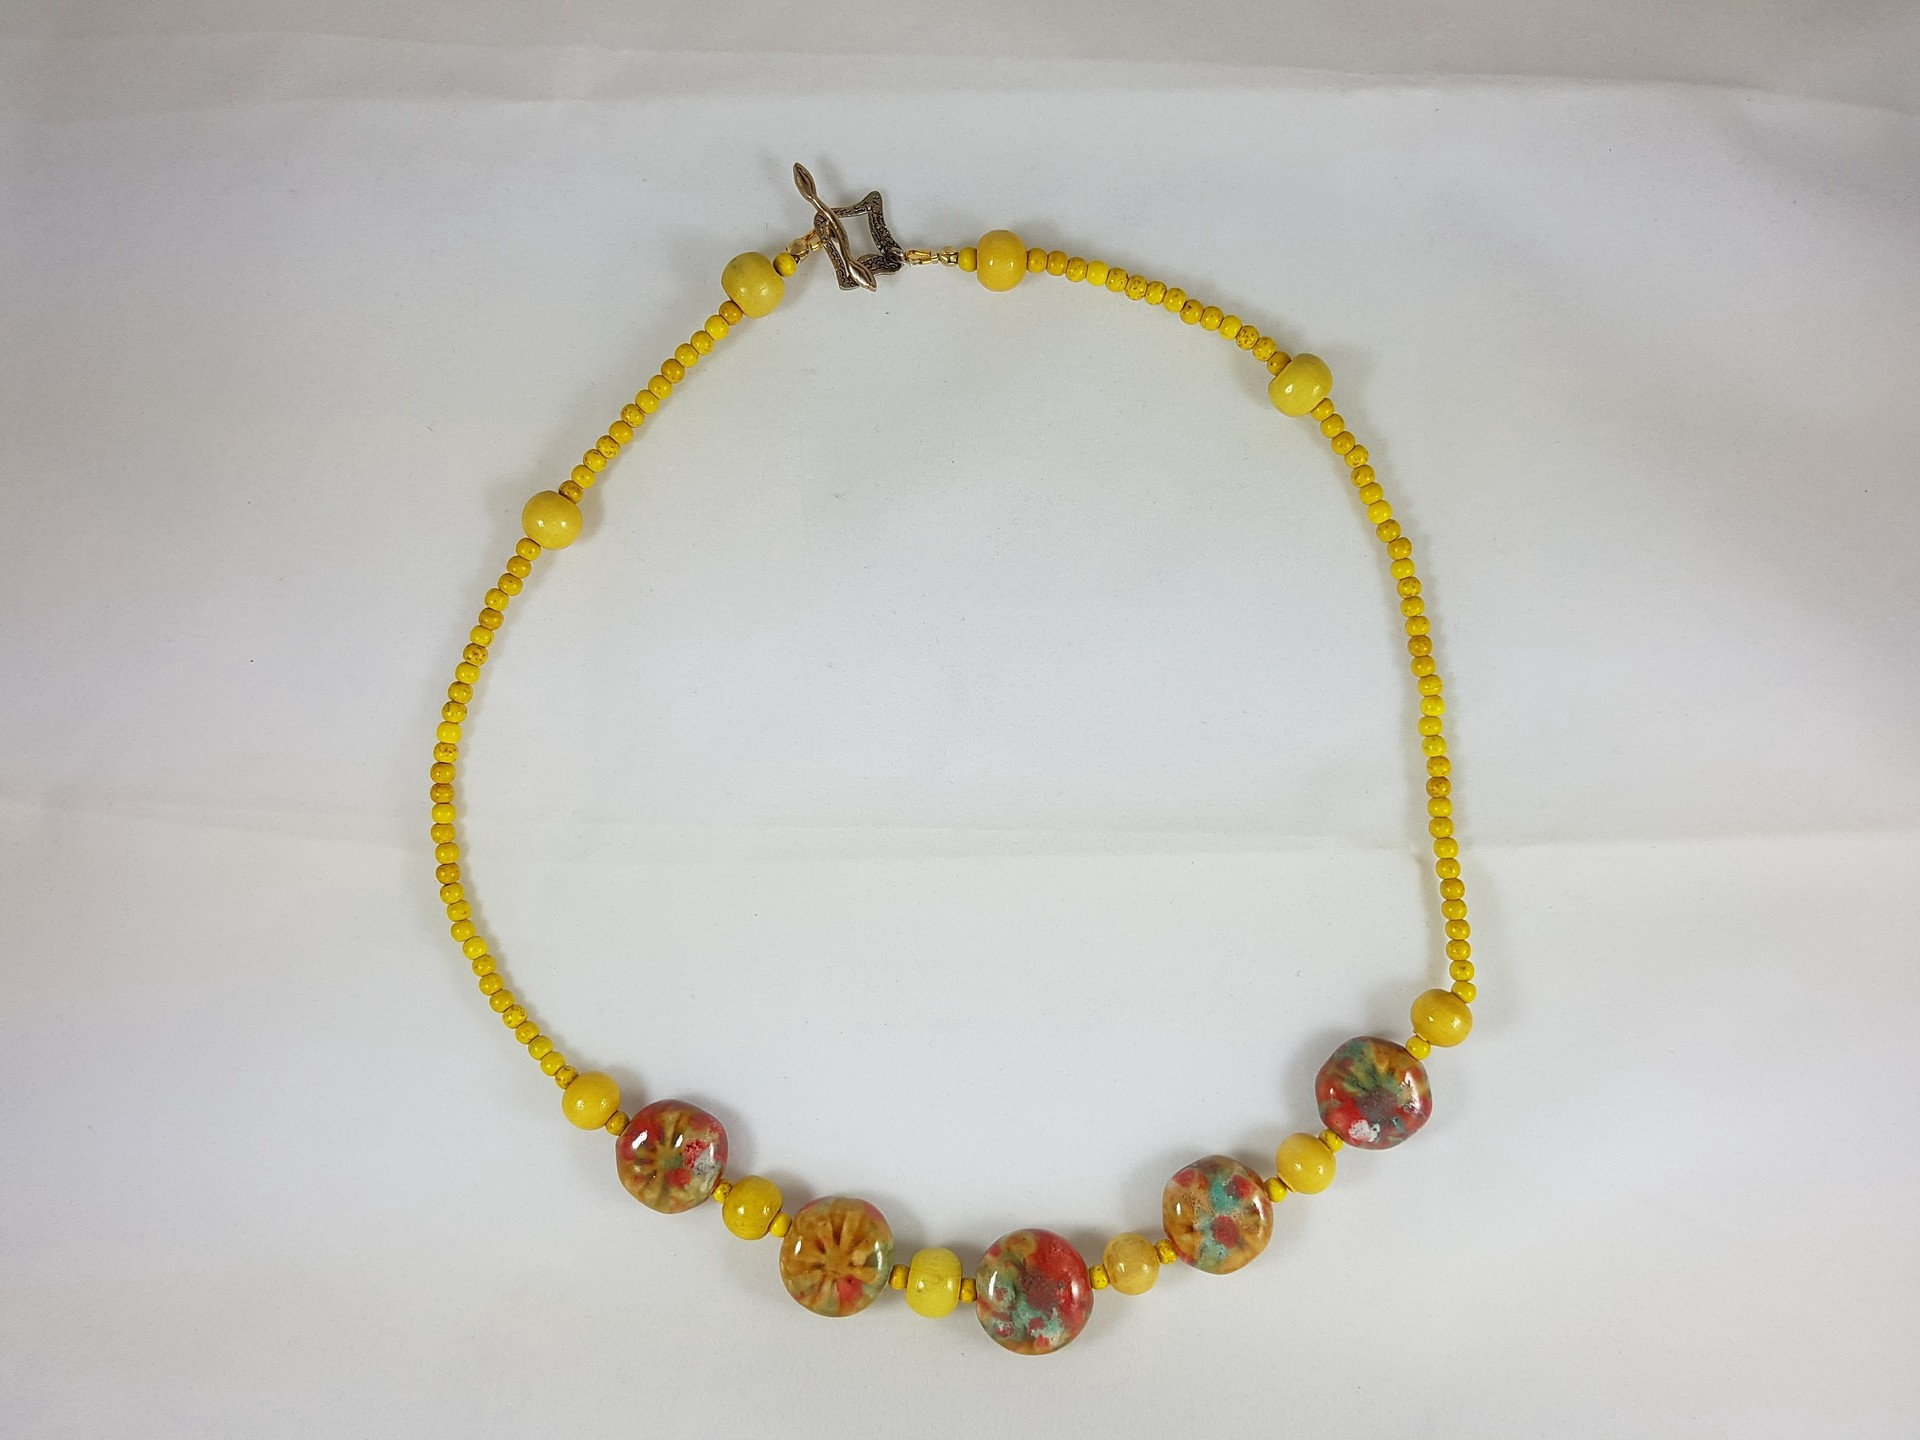 Vintage yellow necklace with 5 ceramic focal beads